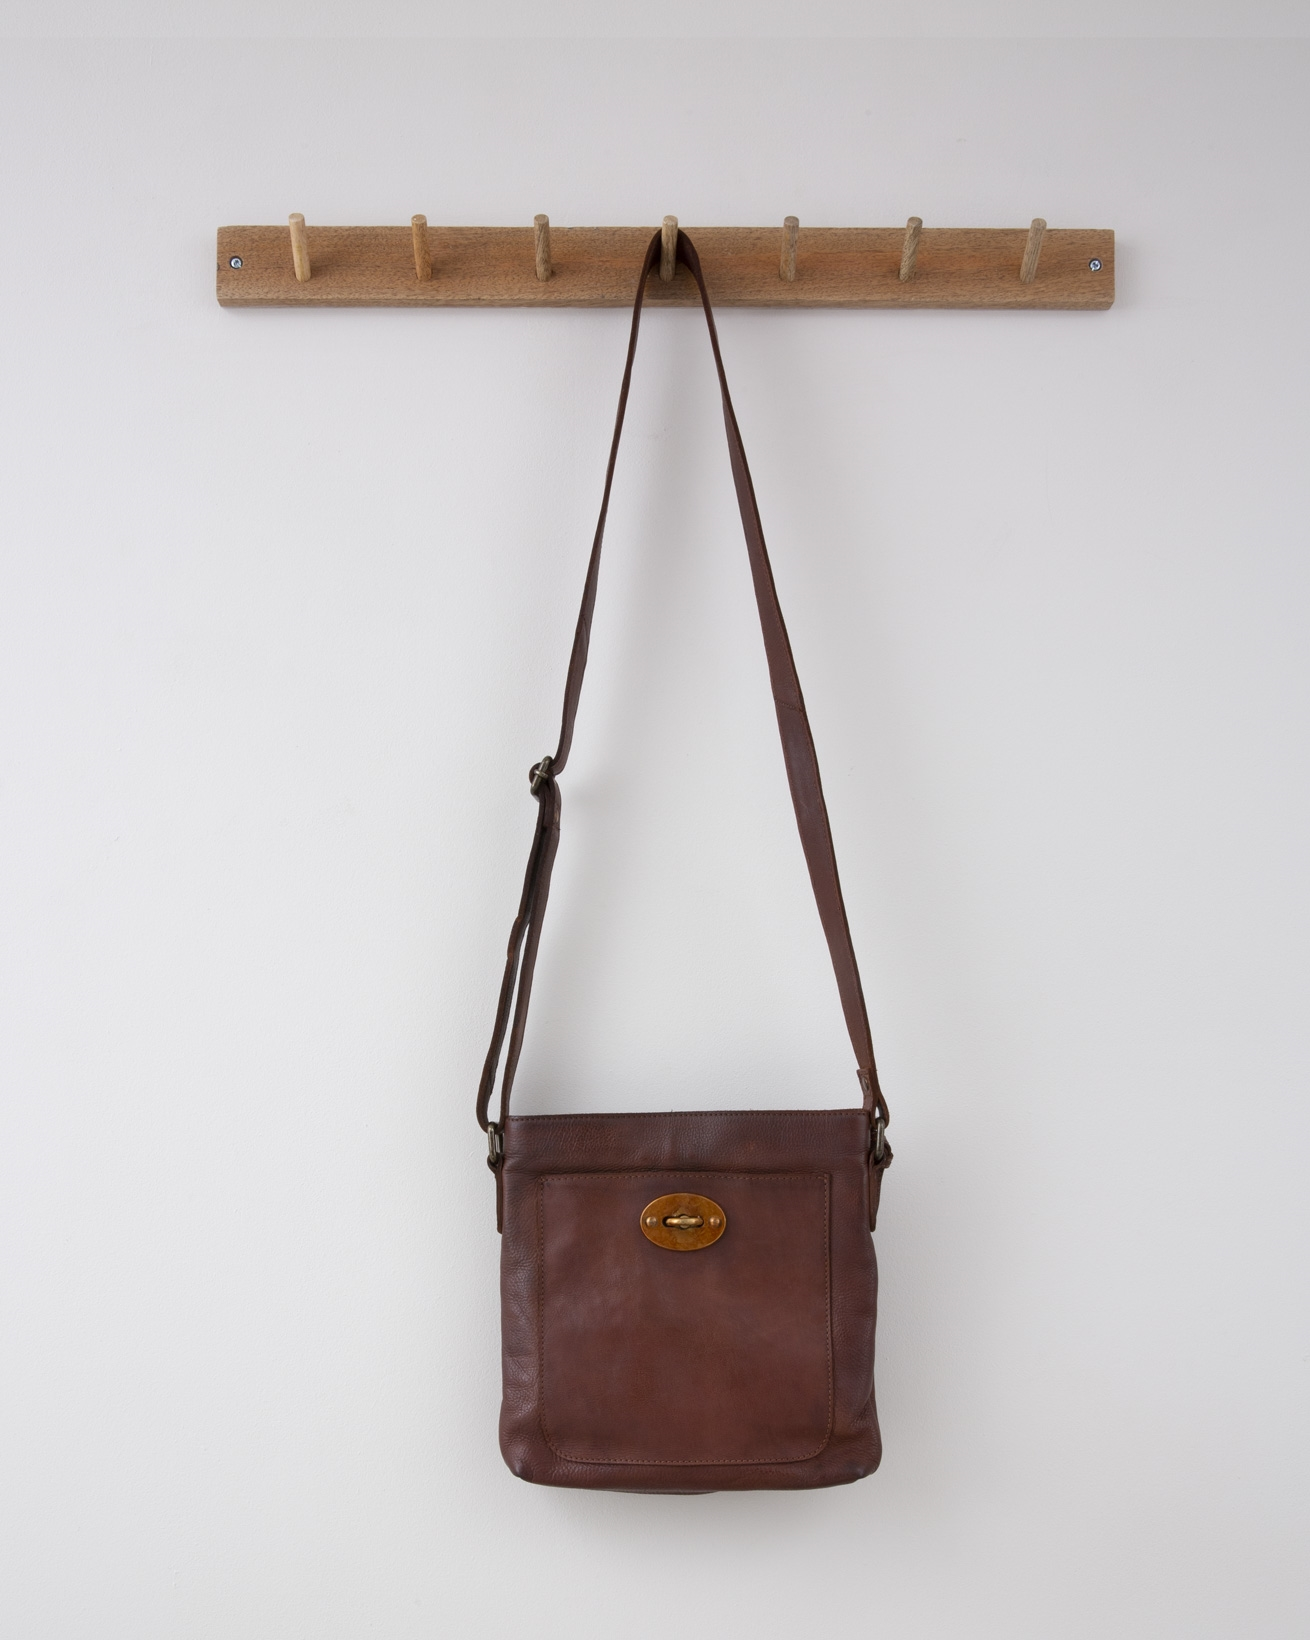 Rigger Bag - 24cm x 25cm - Antique Cognac - 1299